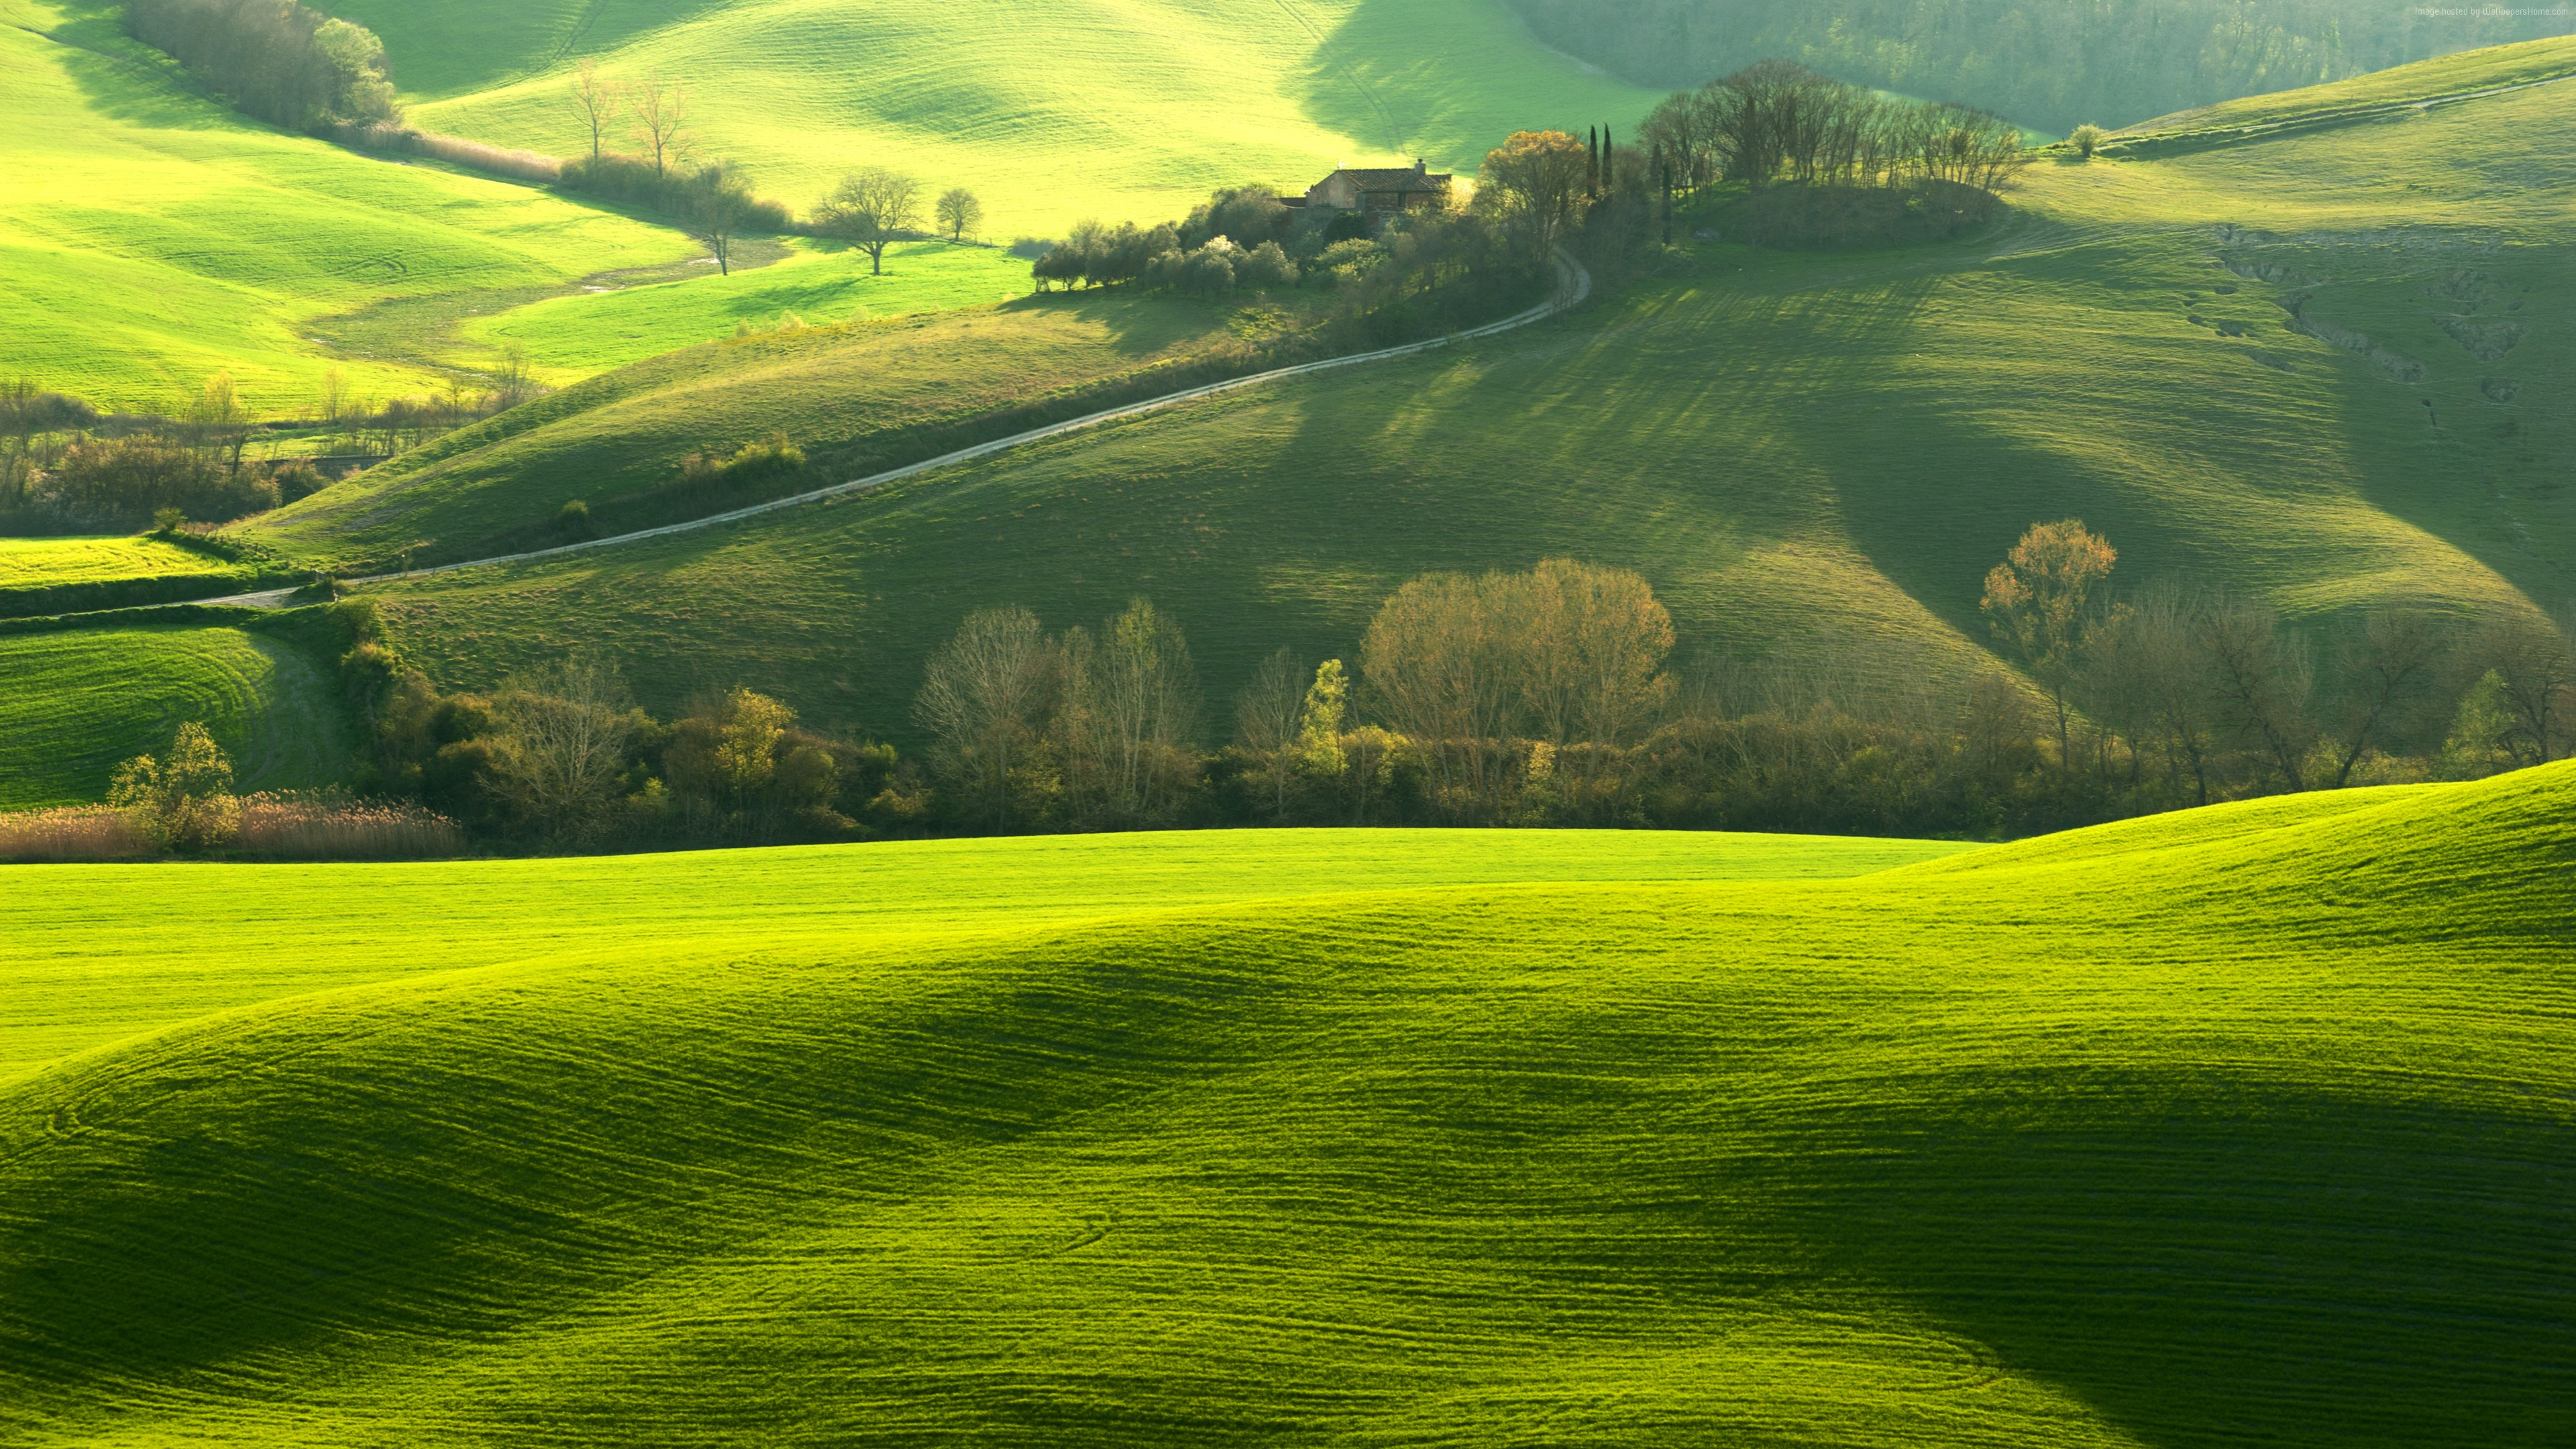 Wallpaper Tuscany, Italy, Europe, hills, green, field, 8k, Travel